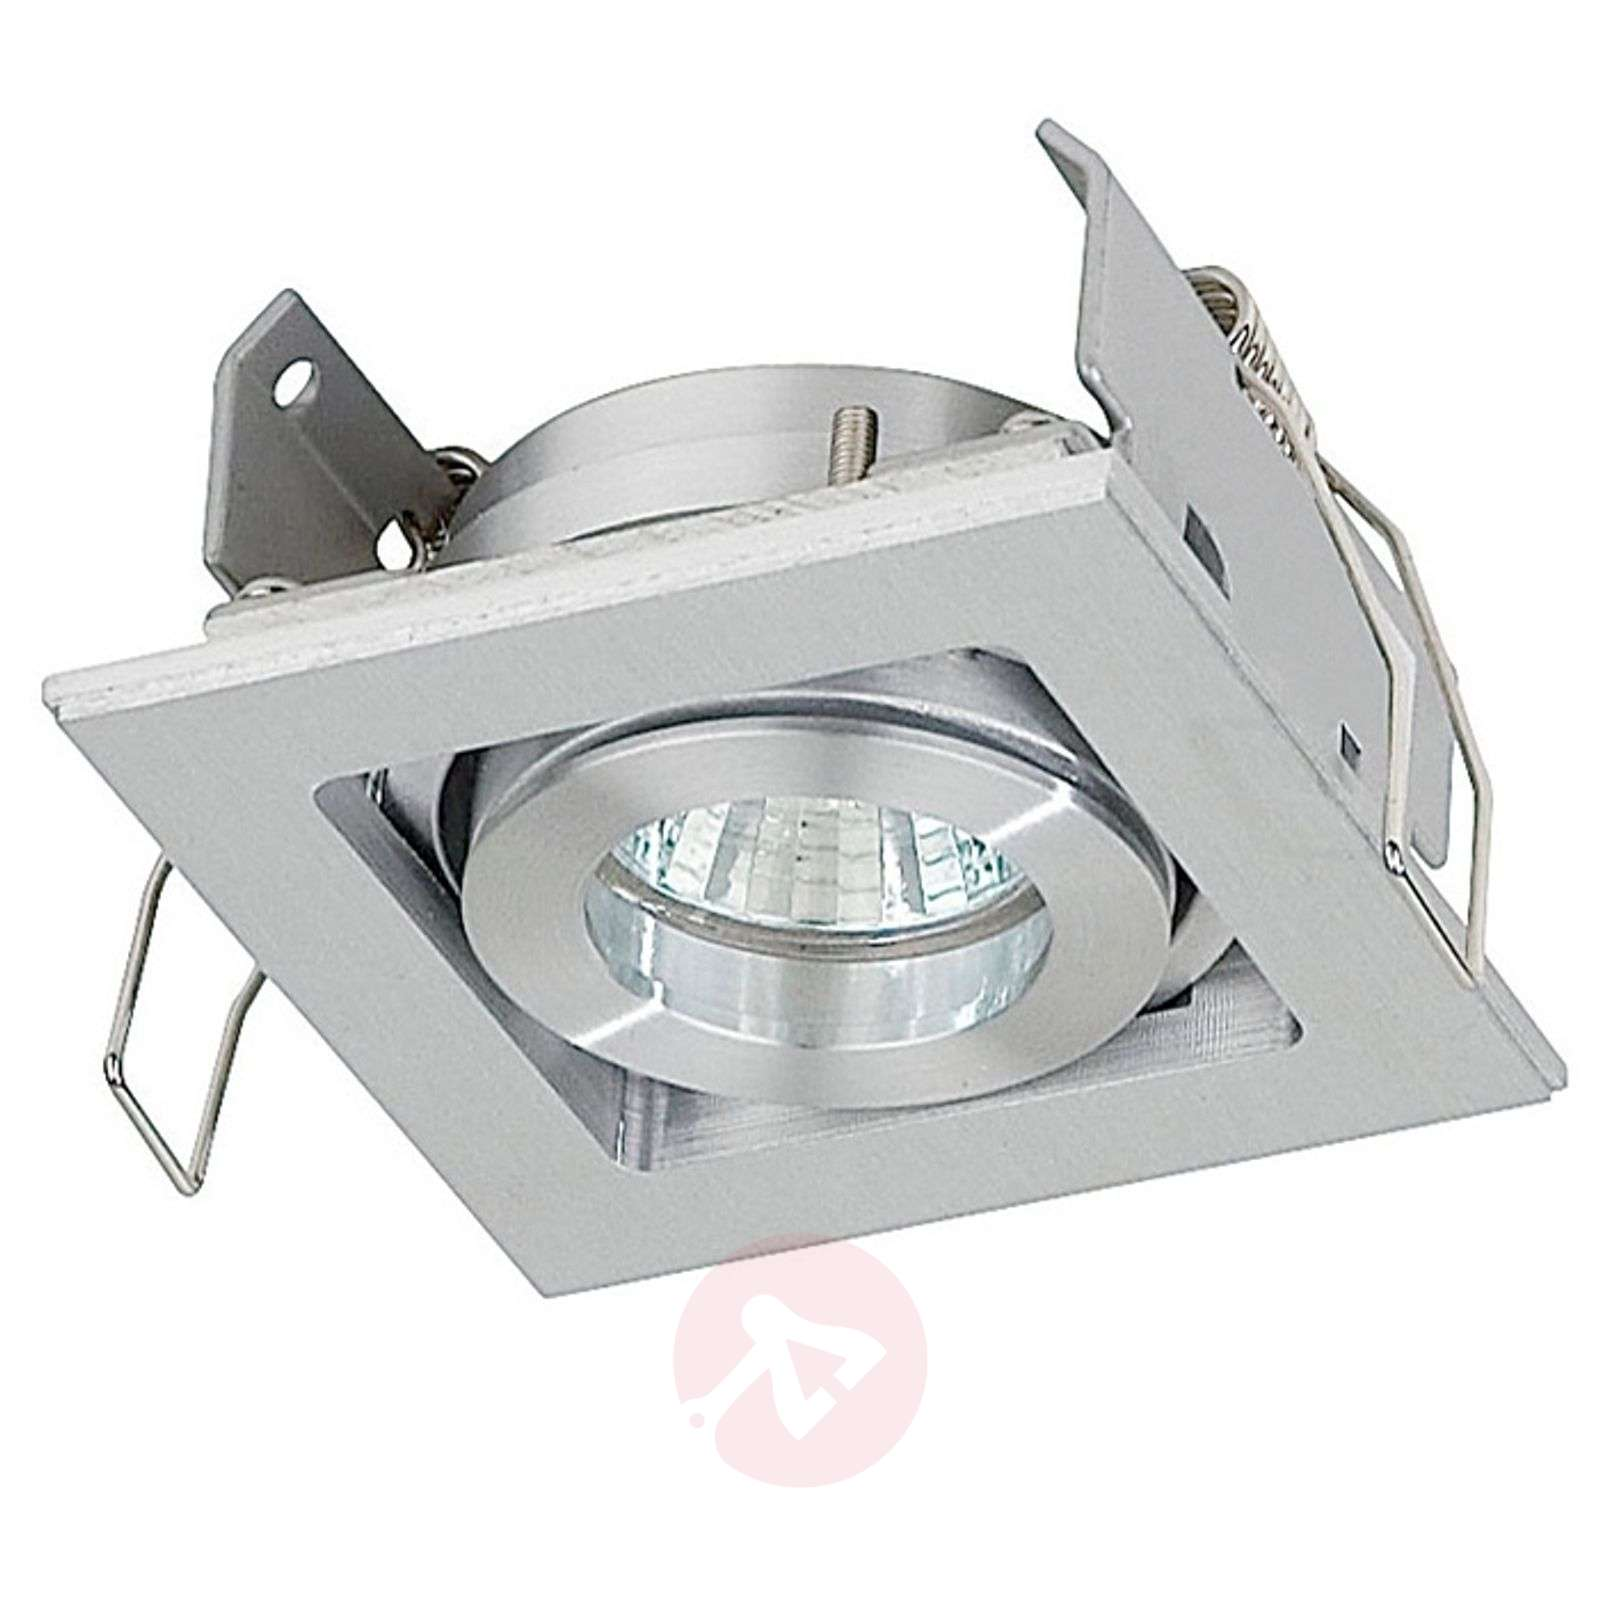 Low voltage recessed light liverpool lights low voltage recessed light liverpool one bulb 1030032 01 aloadofball Image collections